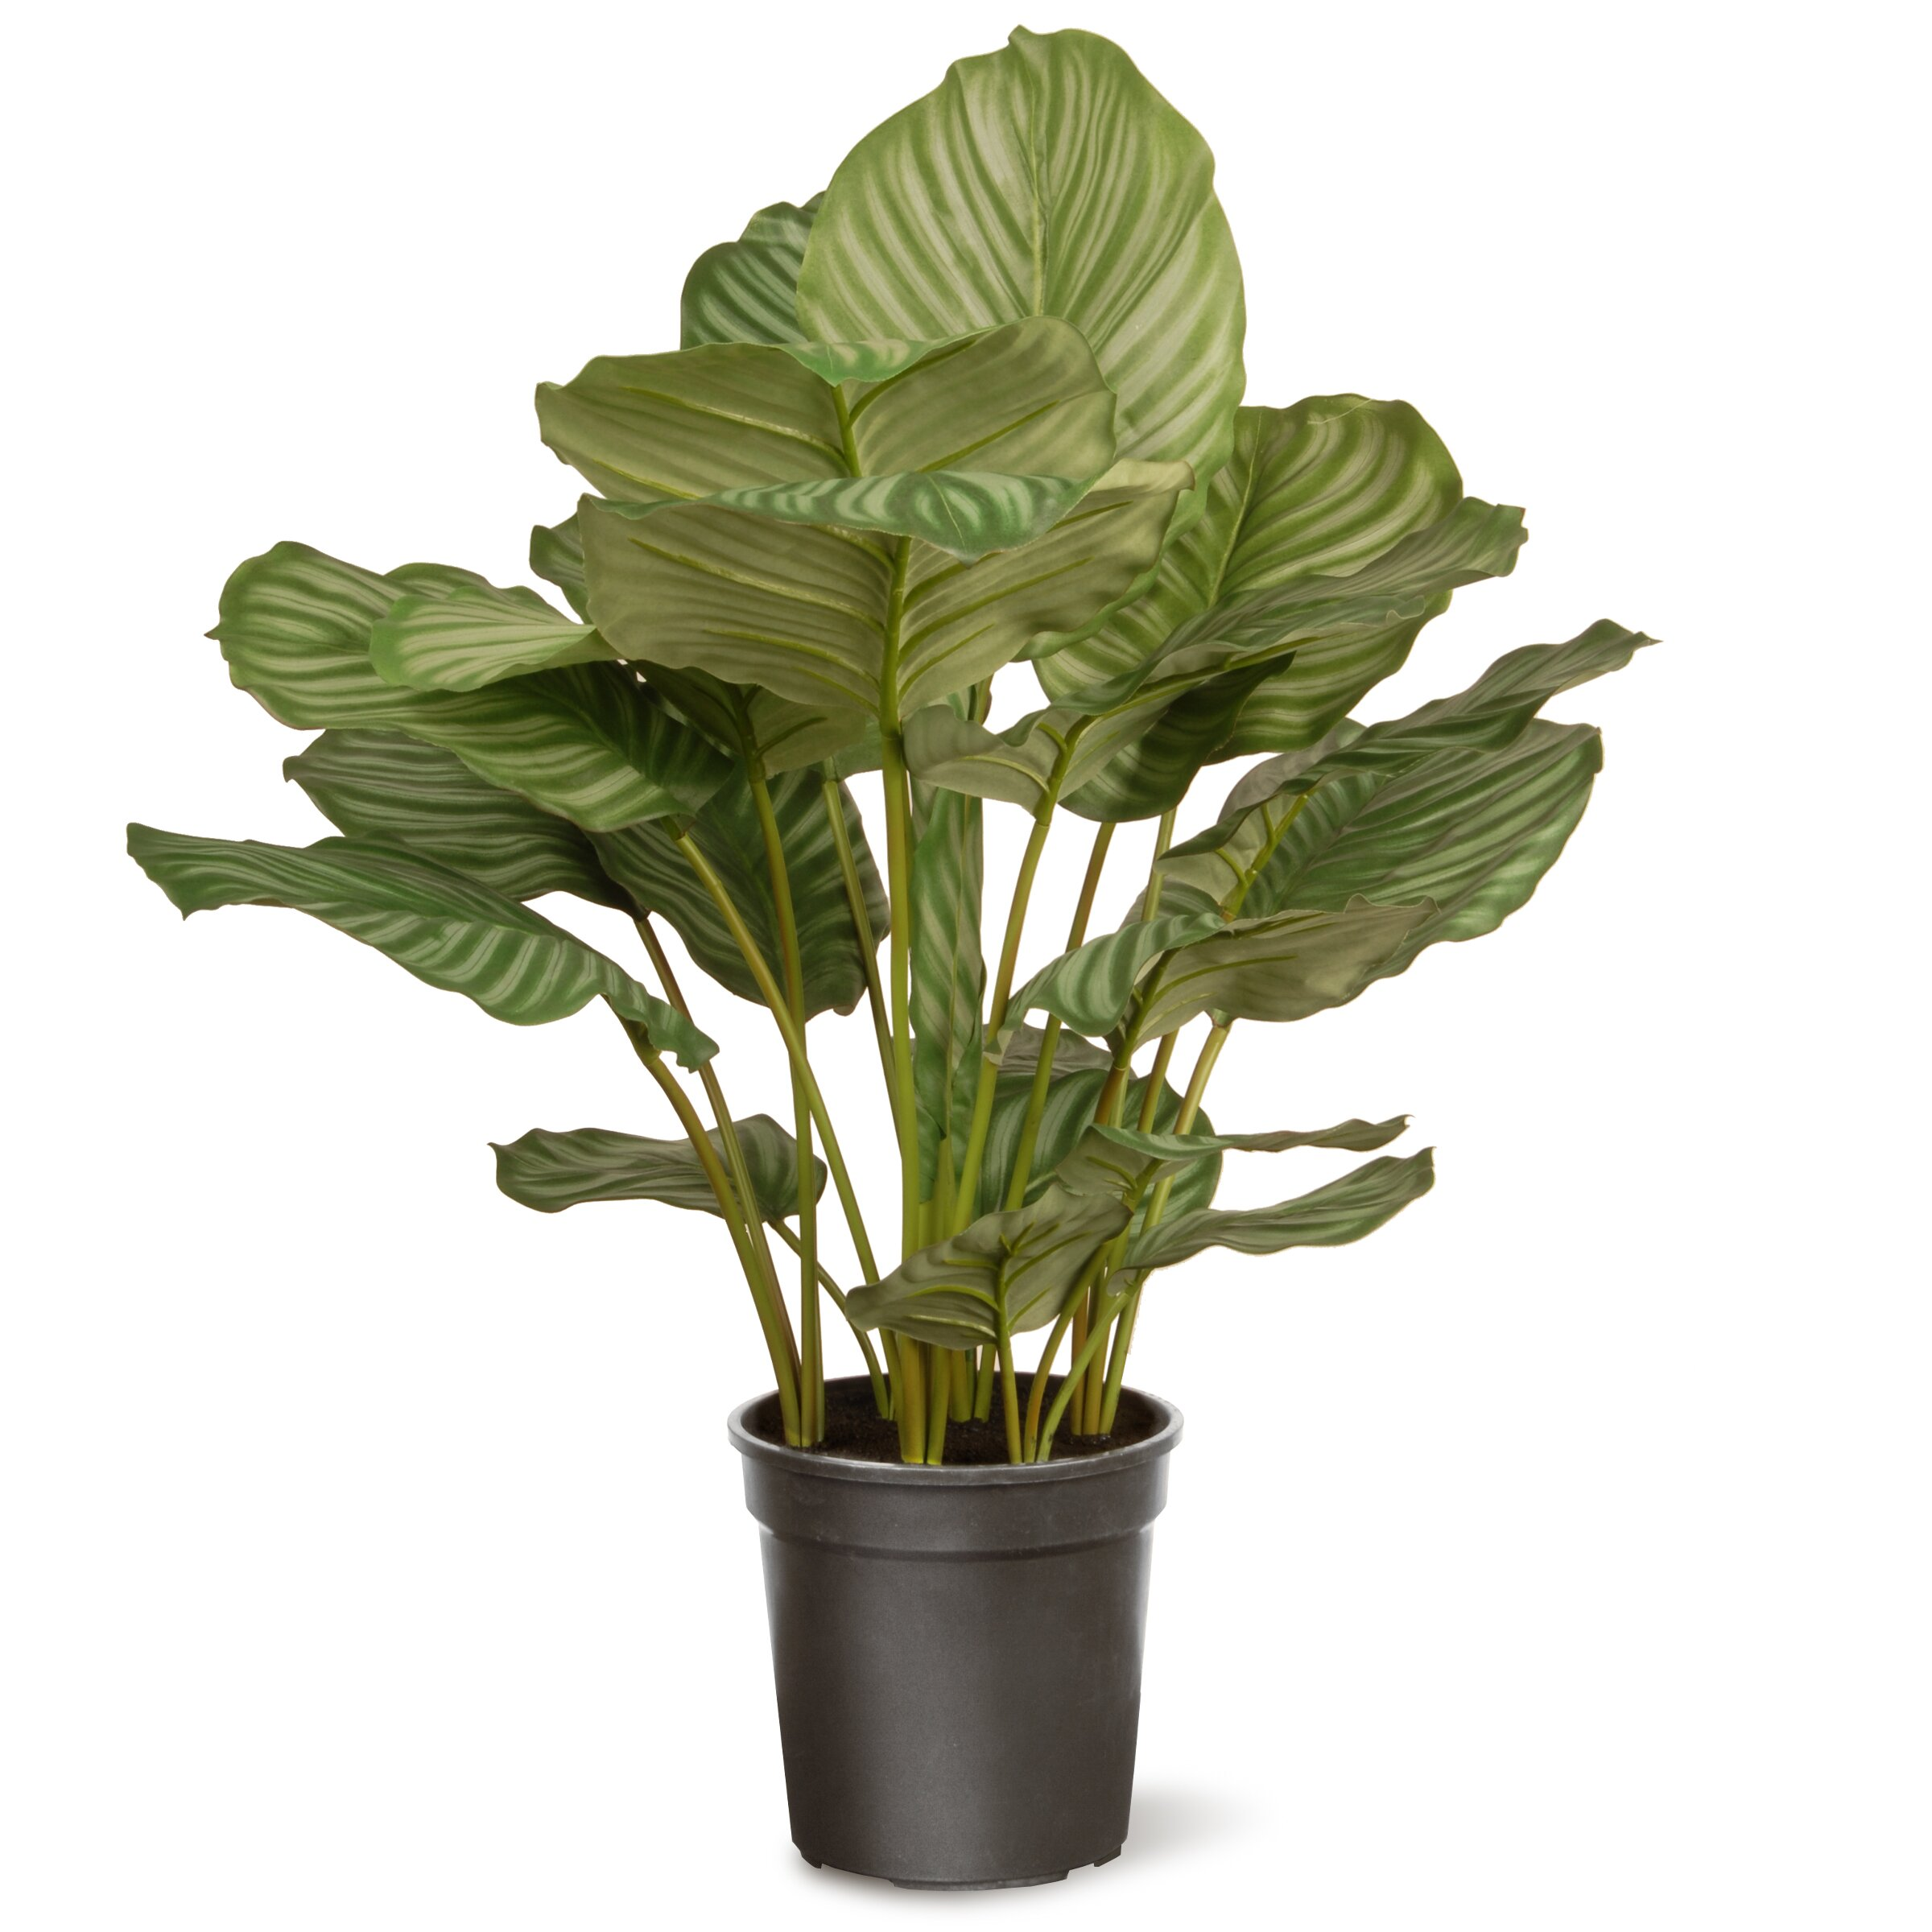 Home Depot Real Christmas Tree Prices: National Tree Co. Calathea Floor Plant In Pot & Reviews